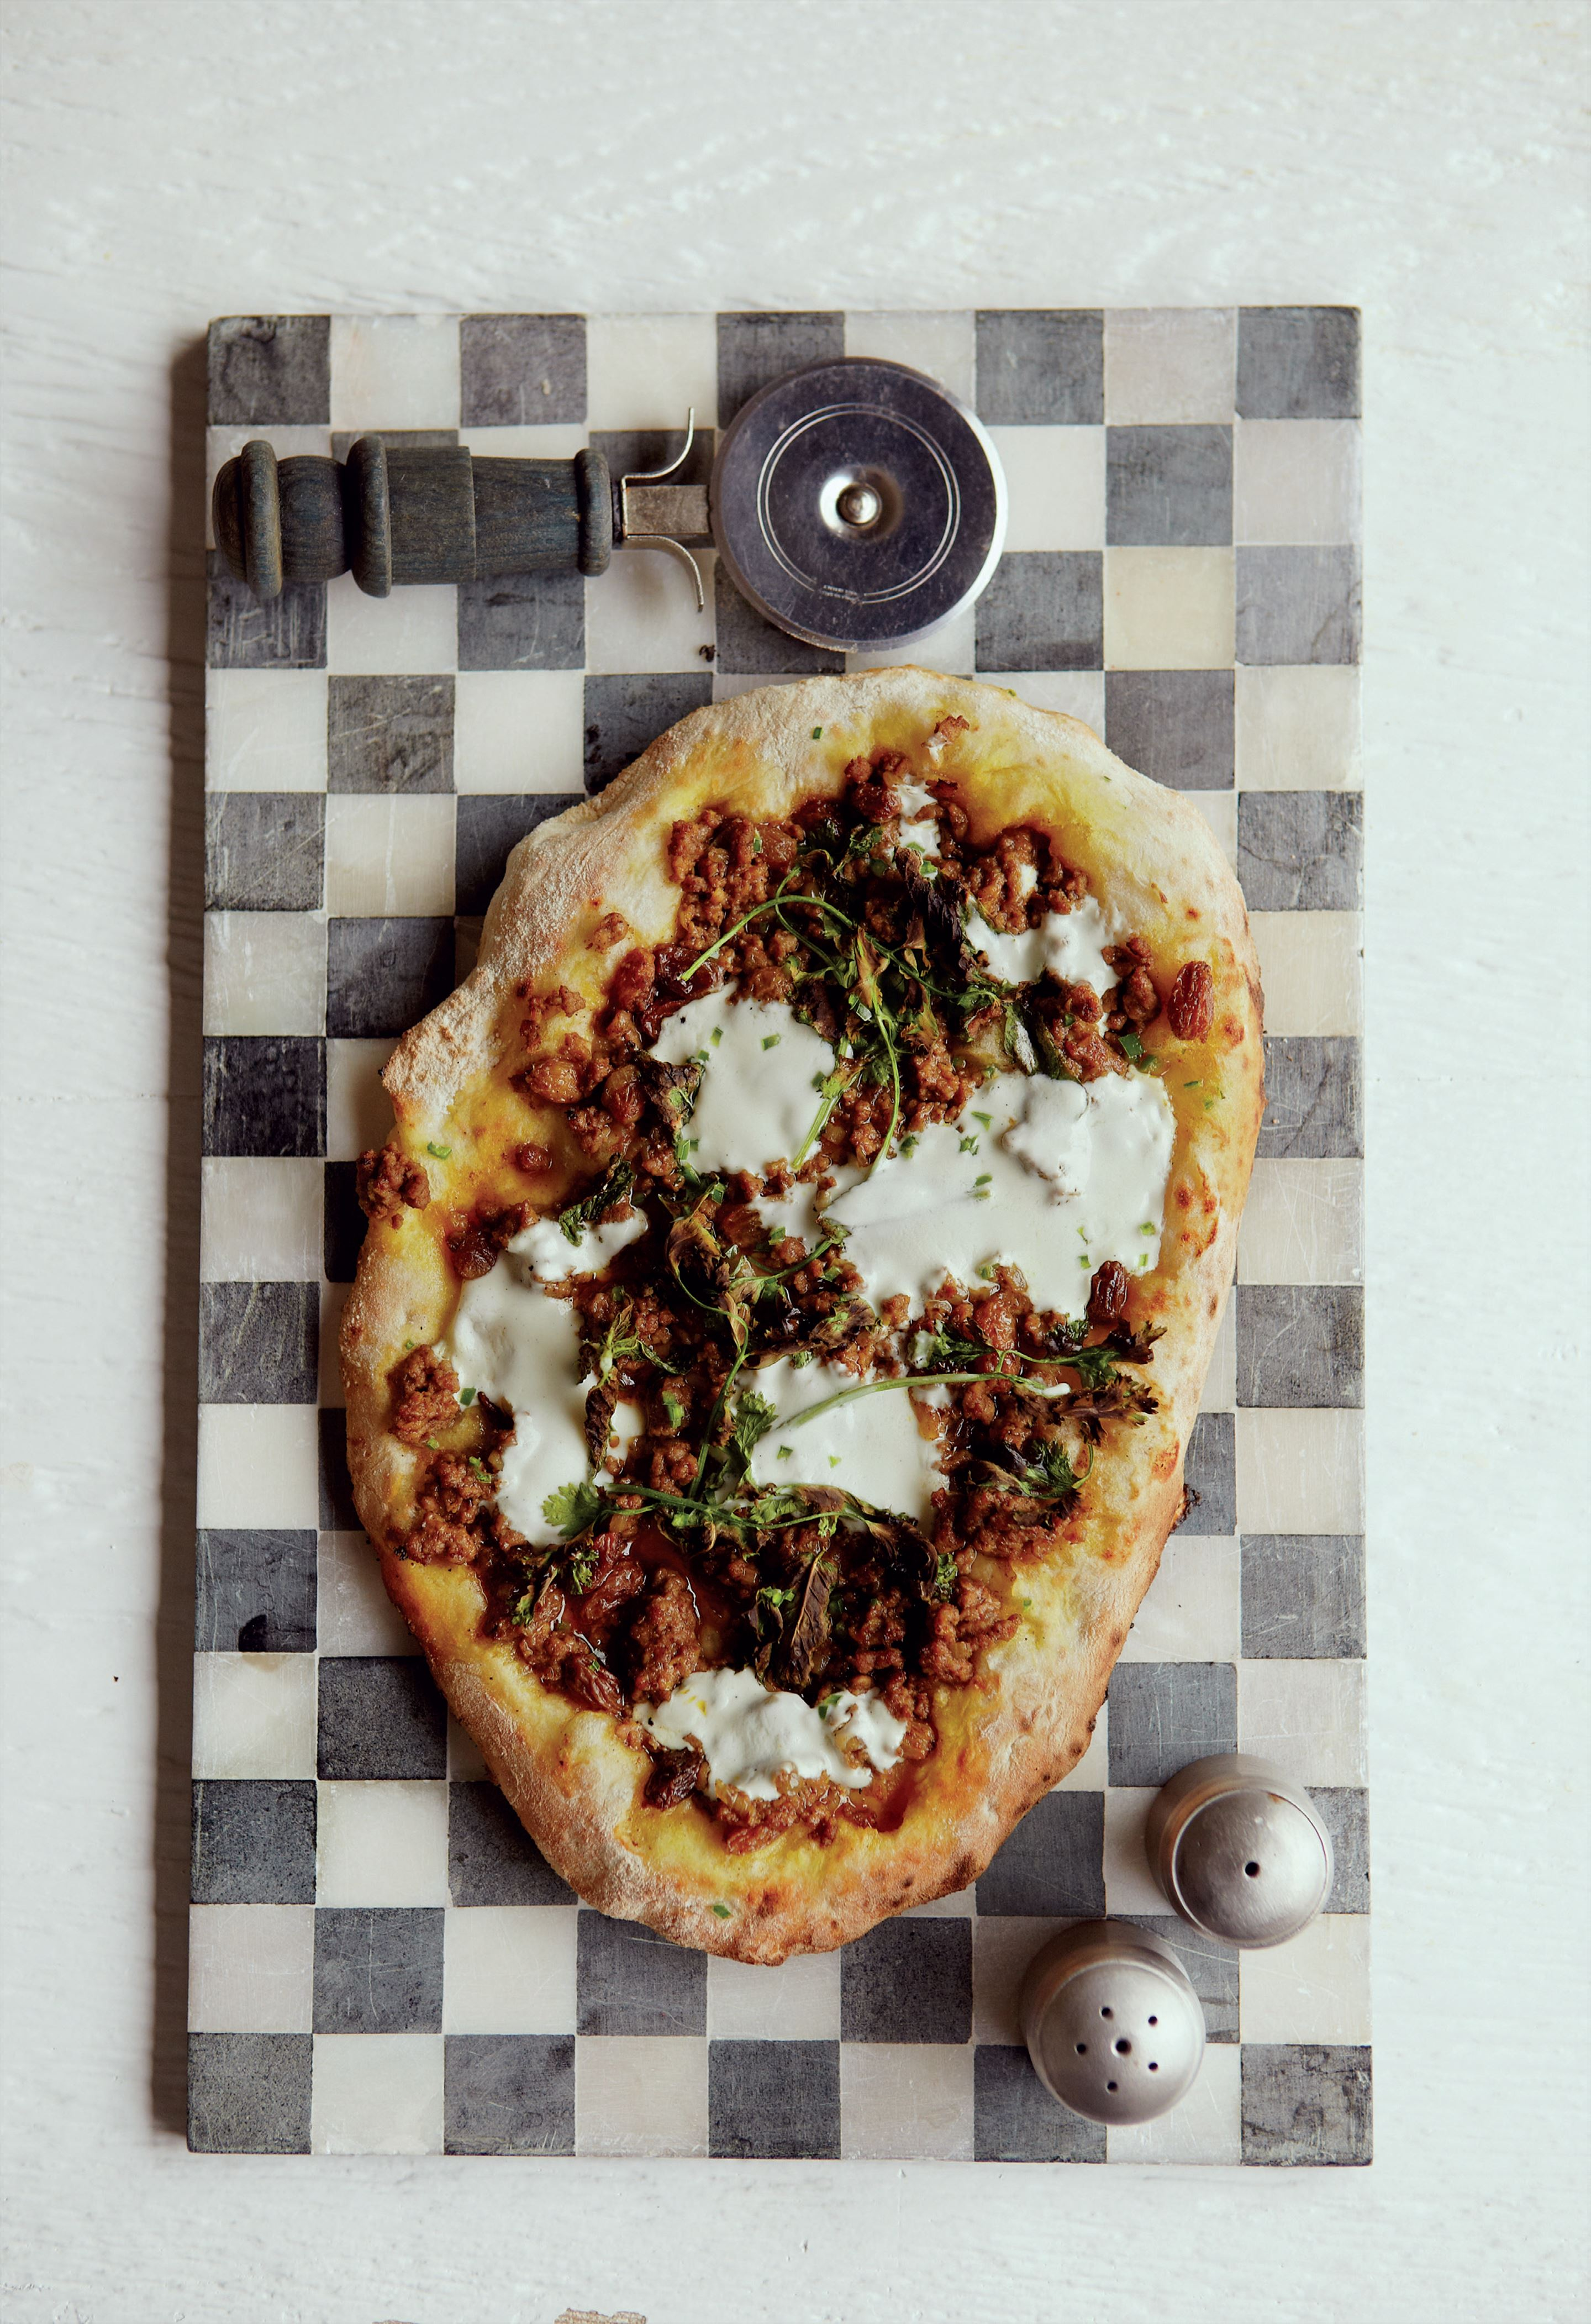 Lebanese spiced lamb flatbread